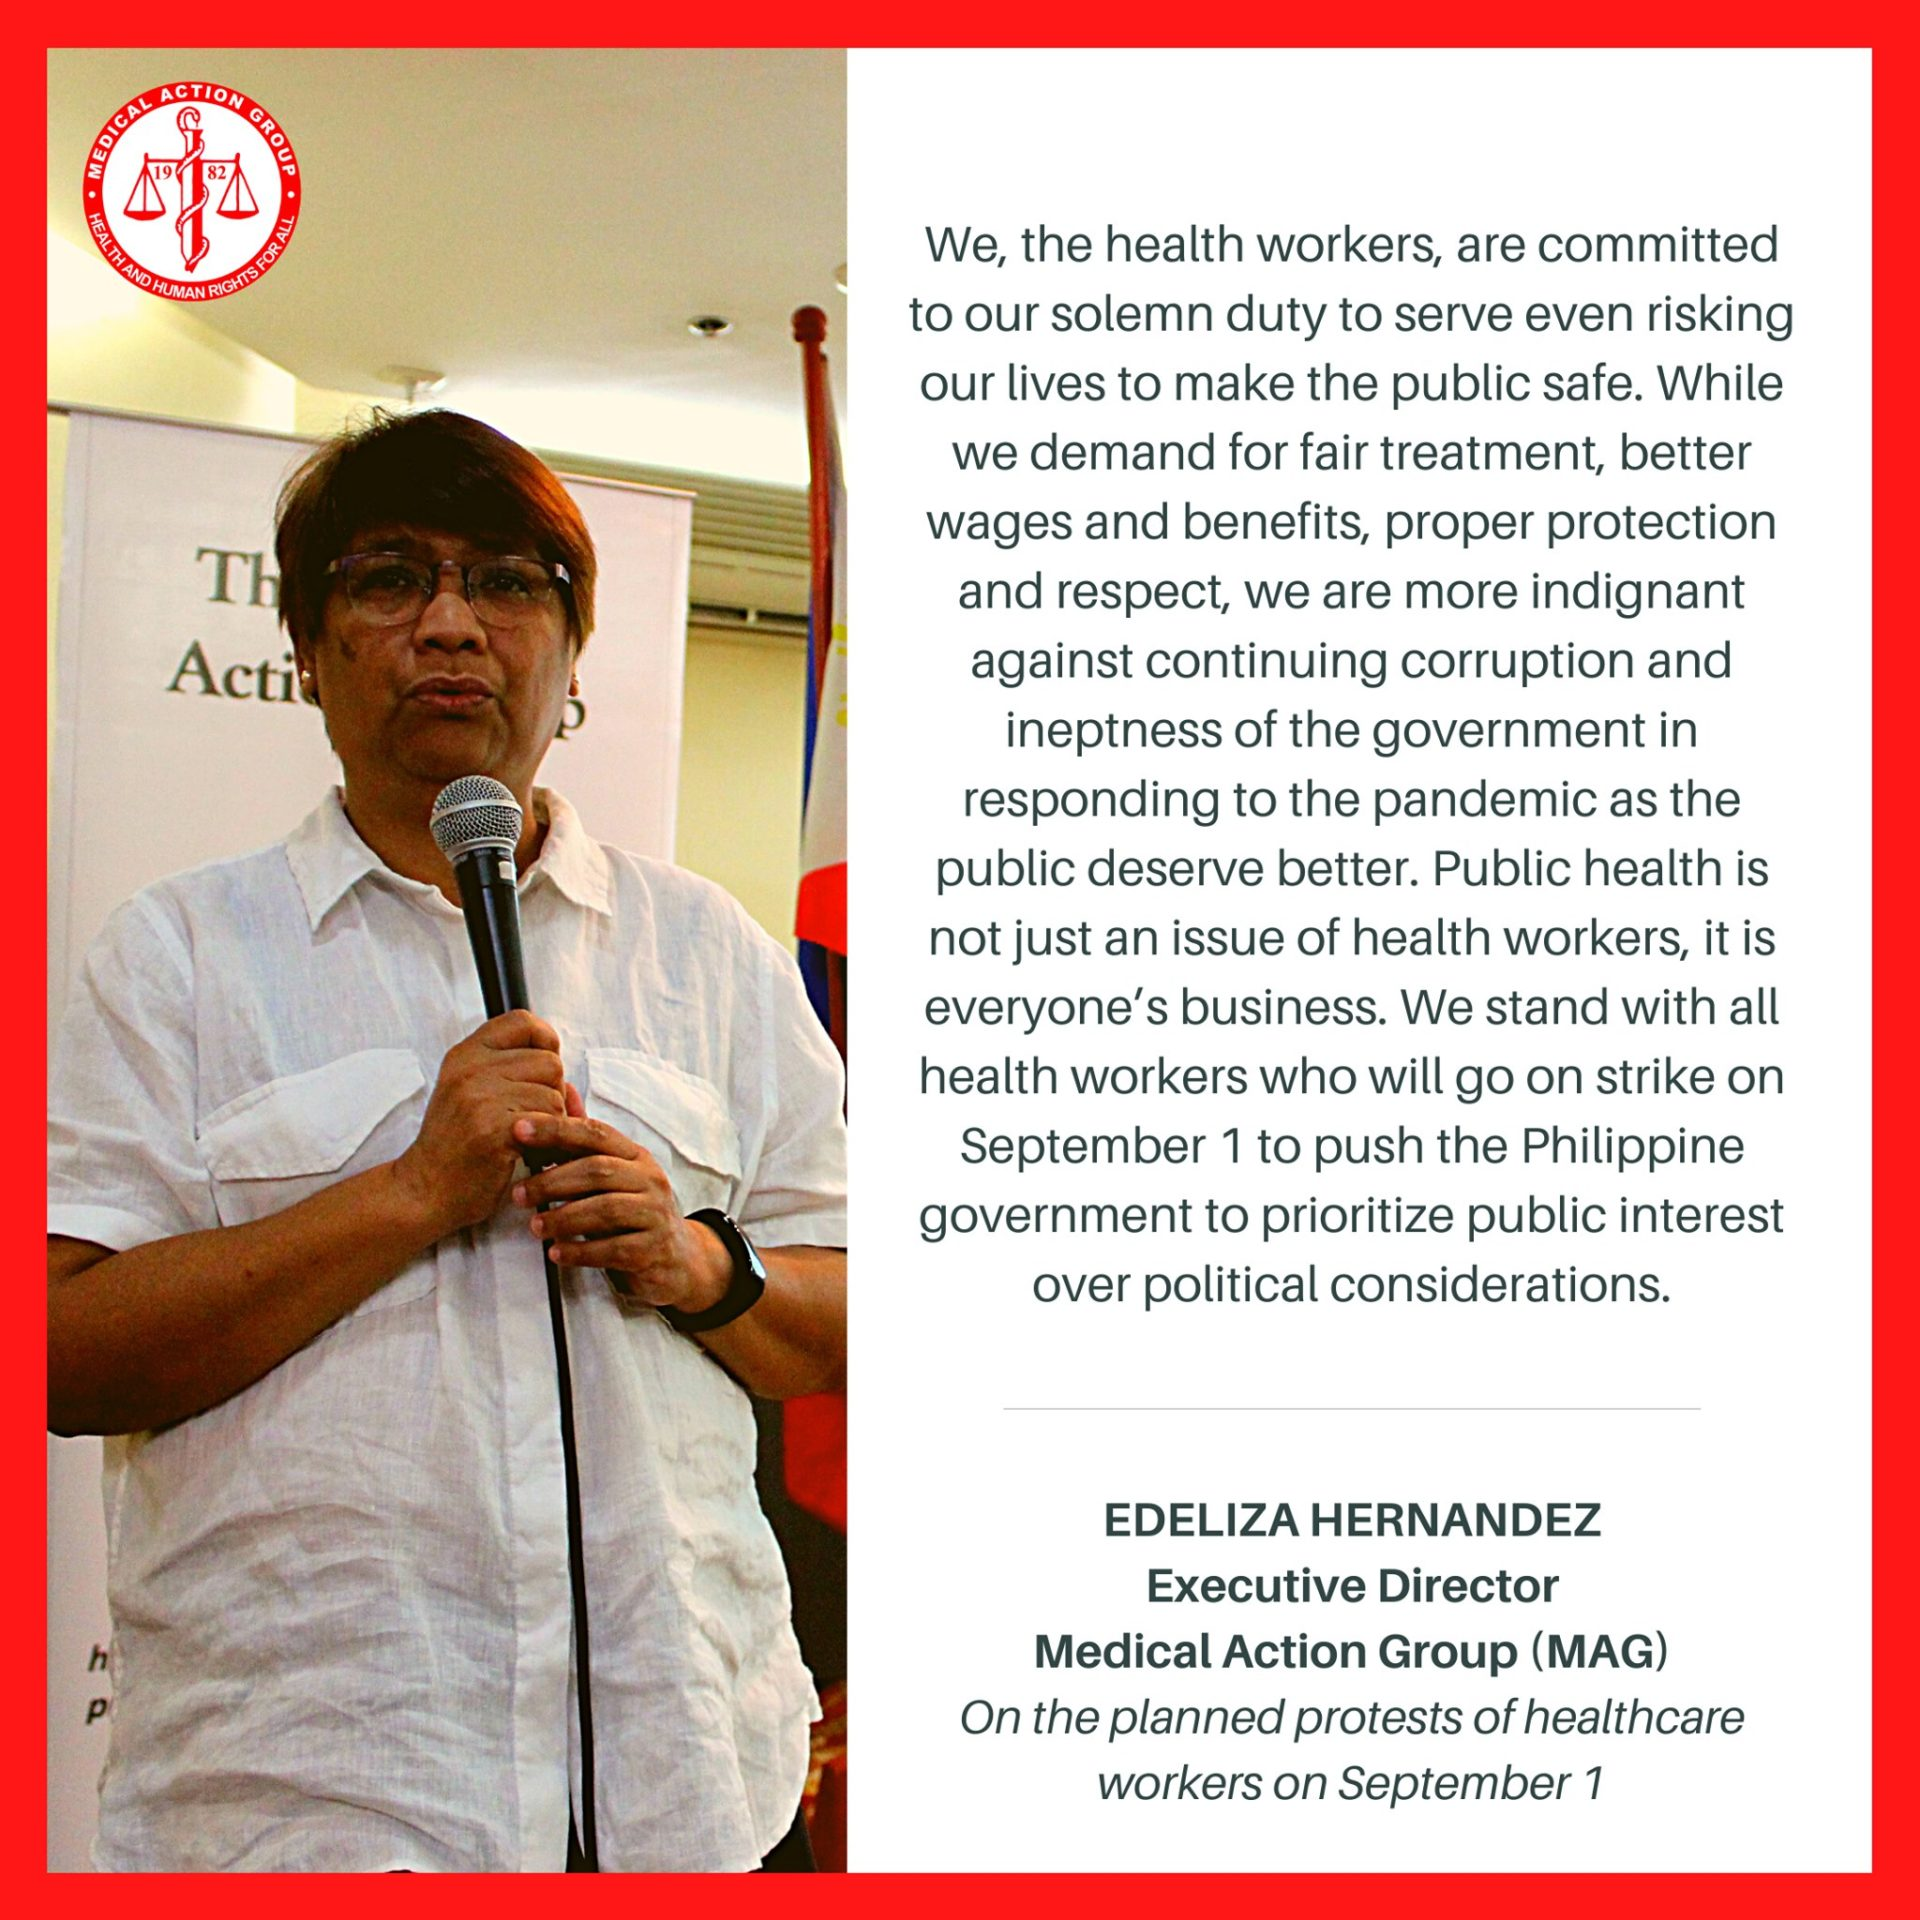 'PUBLIC HEALTH IS NOT JUST AN ISSUE OF HEALTH WORKERS, IT IS EVERYONE'S BUSINESS'